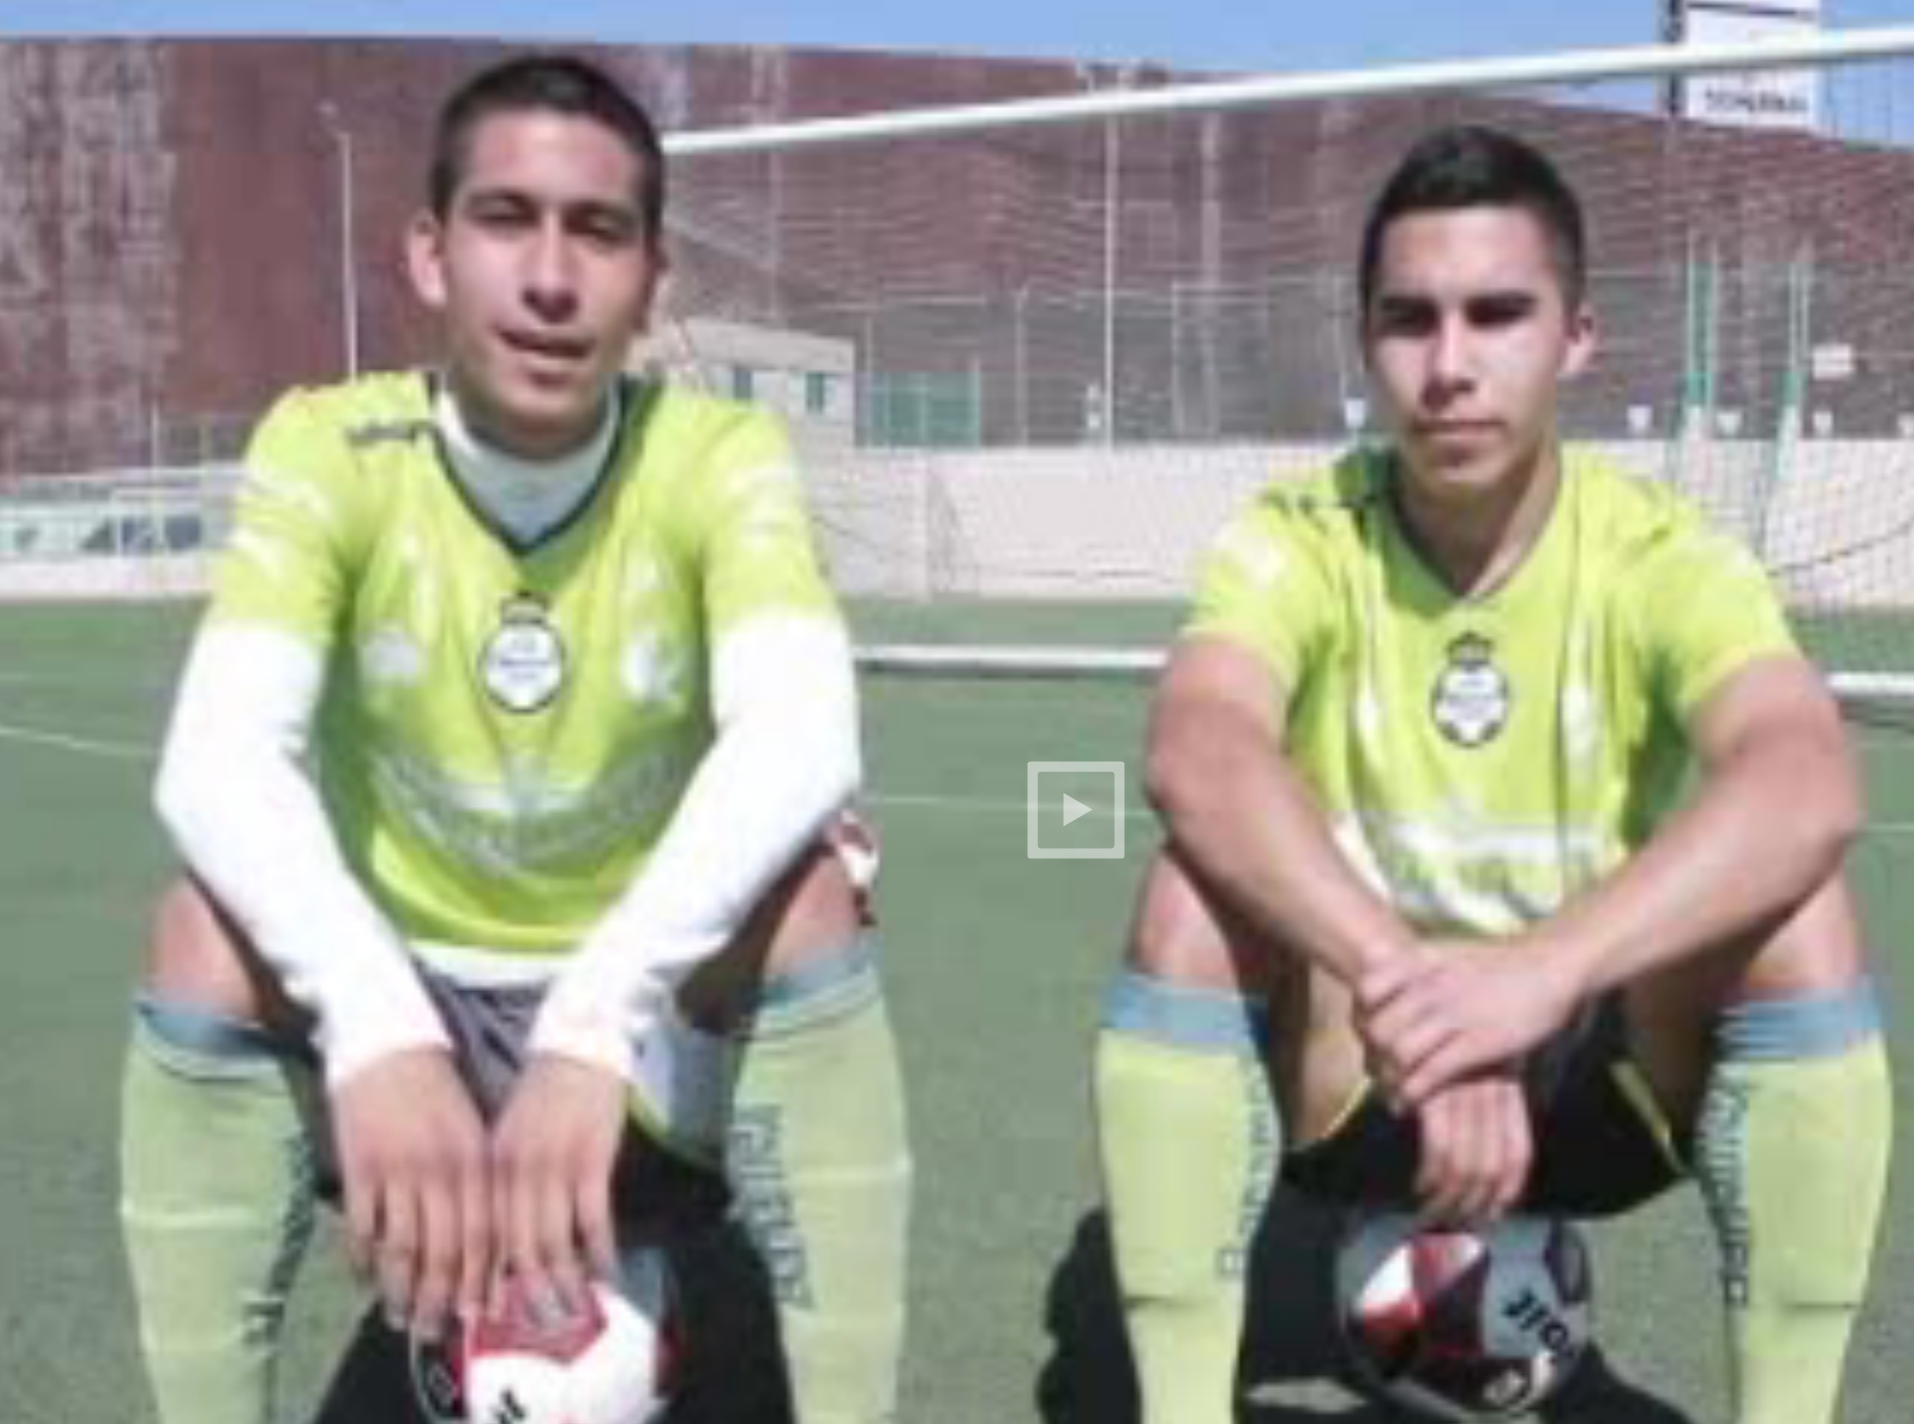 Video – From the US  to México to triumph in Soccer (En Espanol)